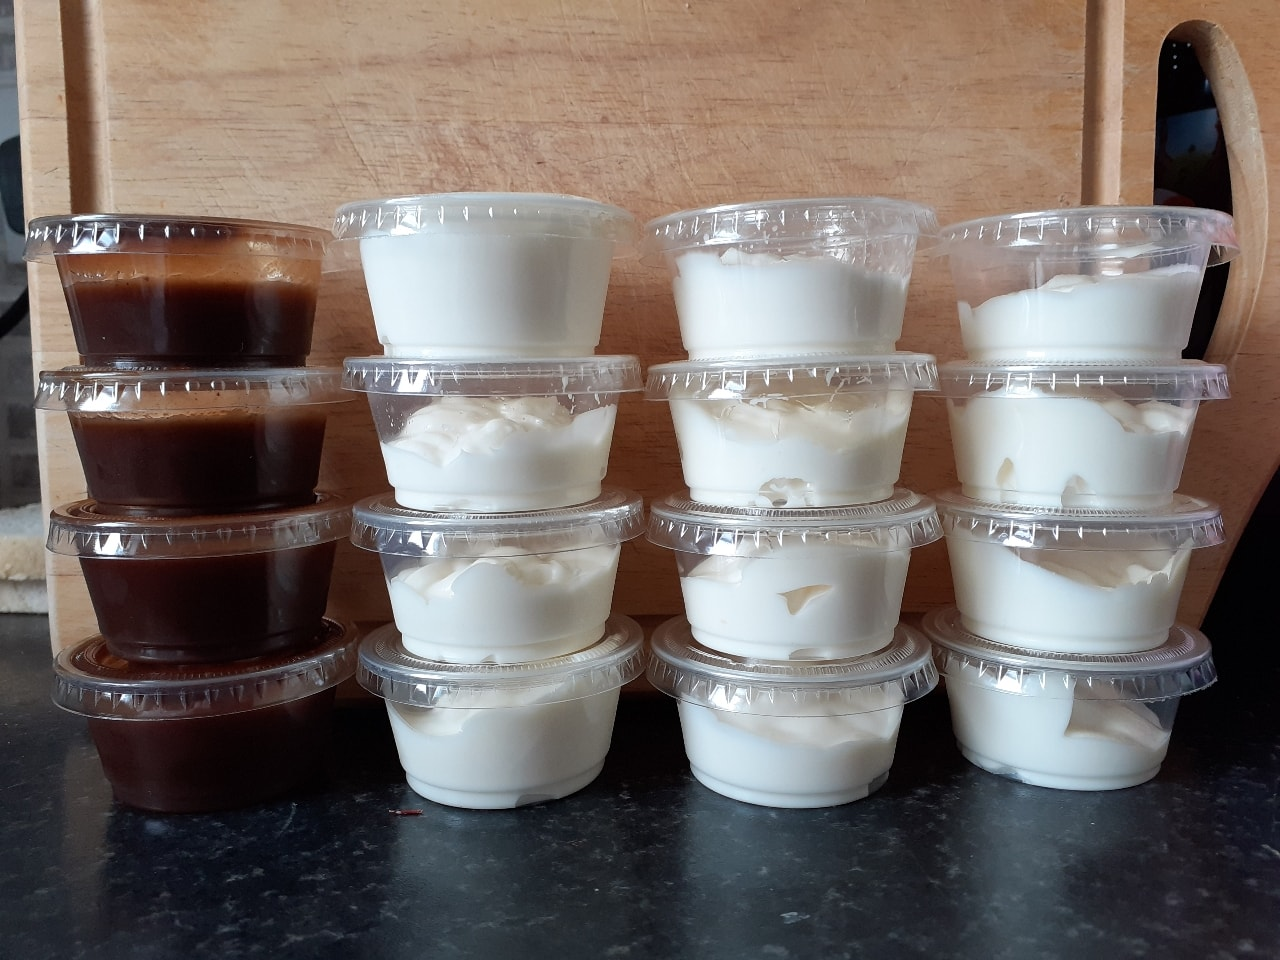 Mayonnaise and brown sauce pots